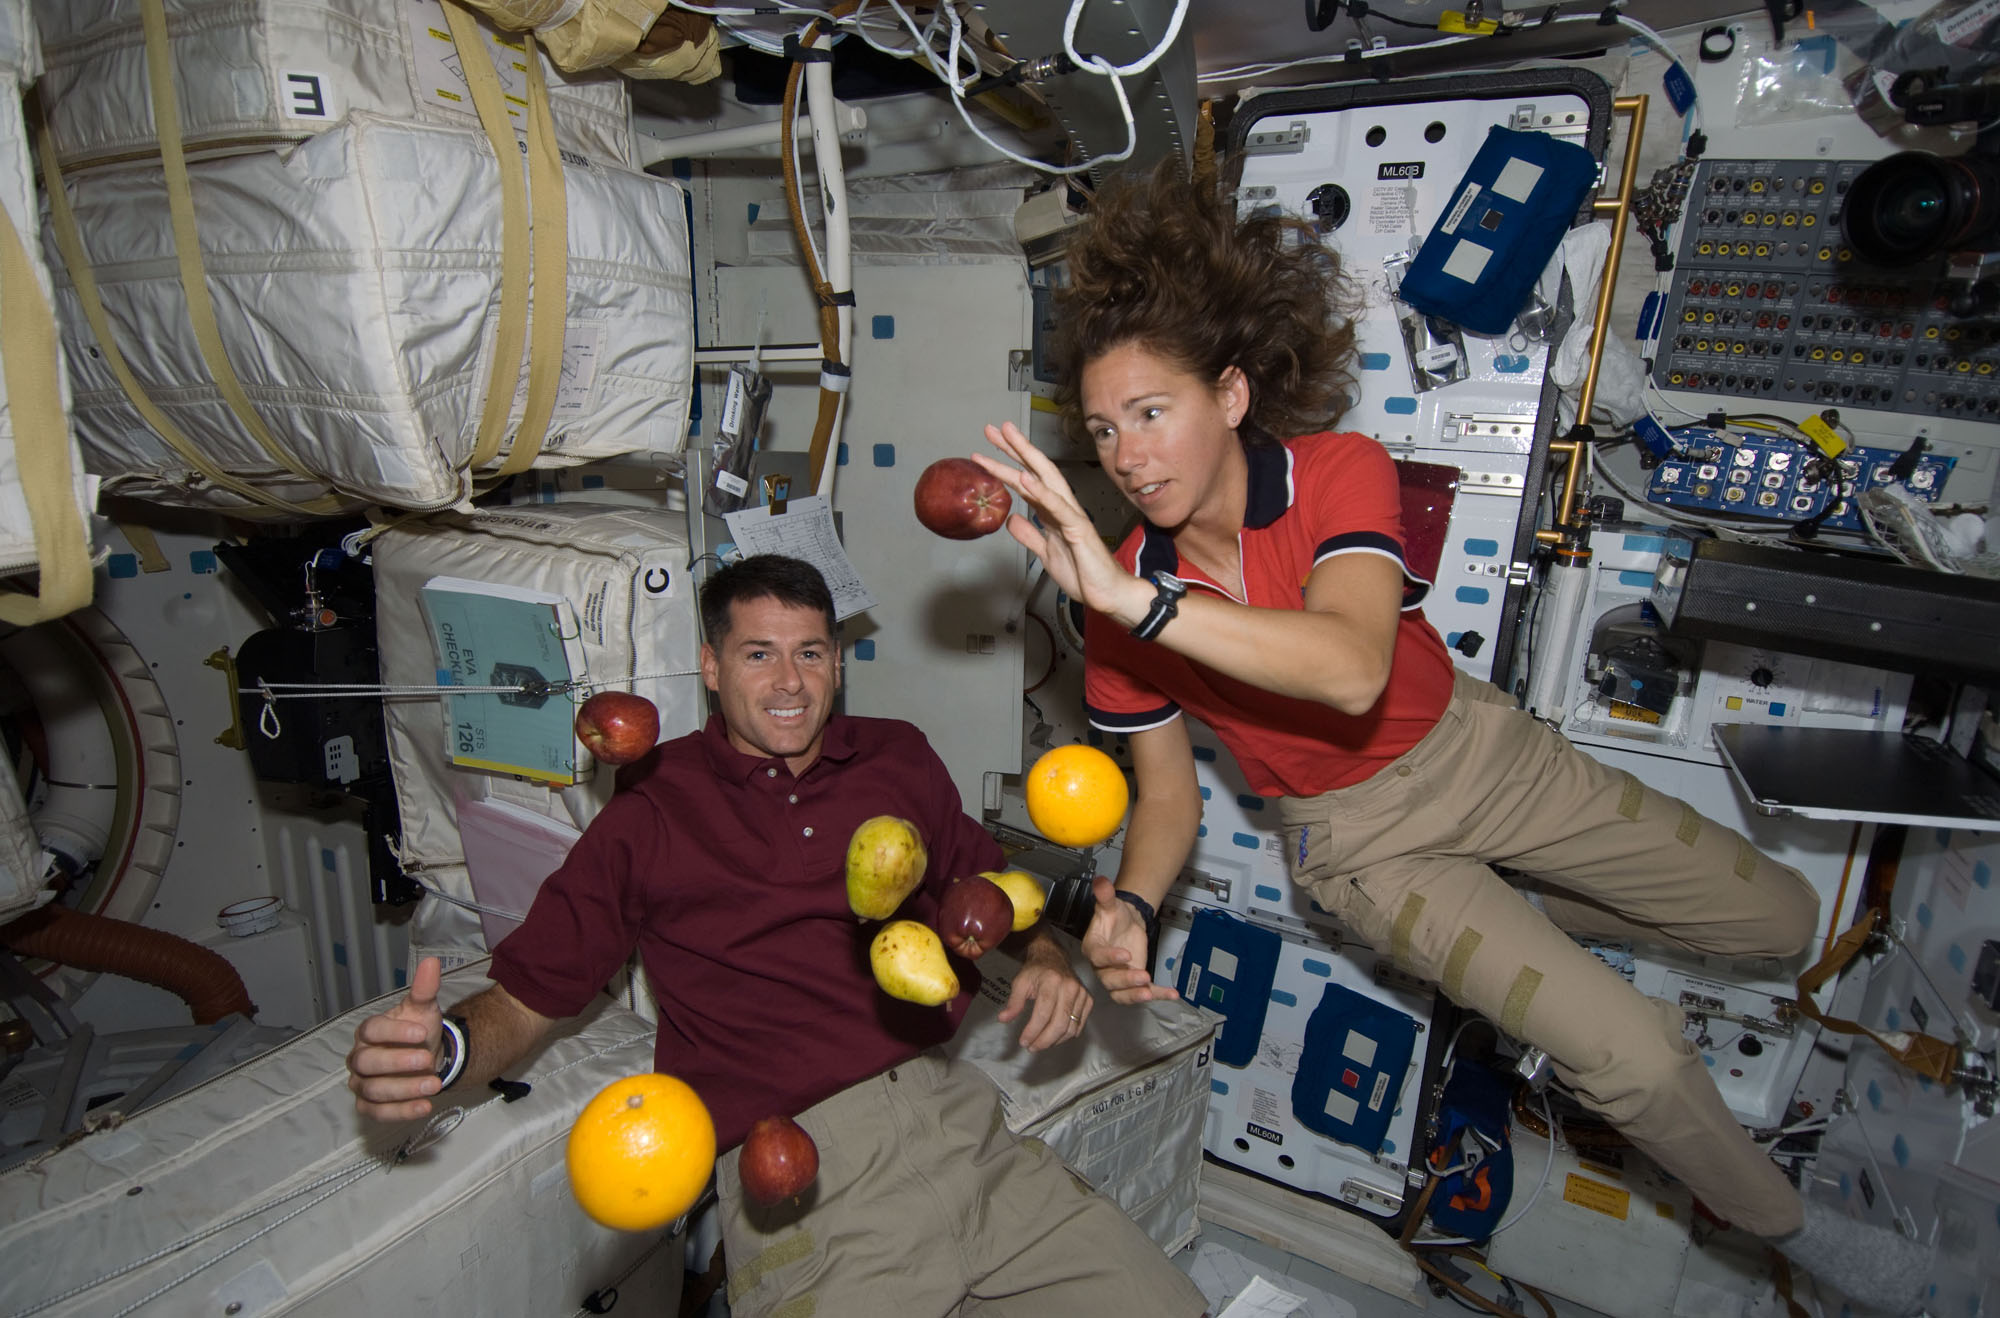 astronauts having fun in space - photo #20